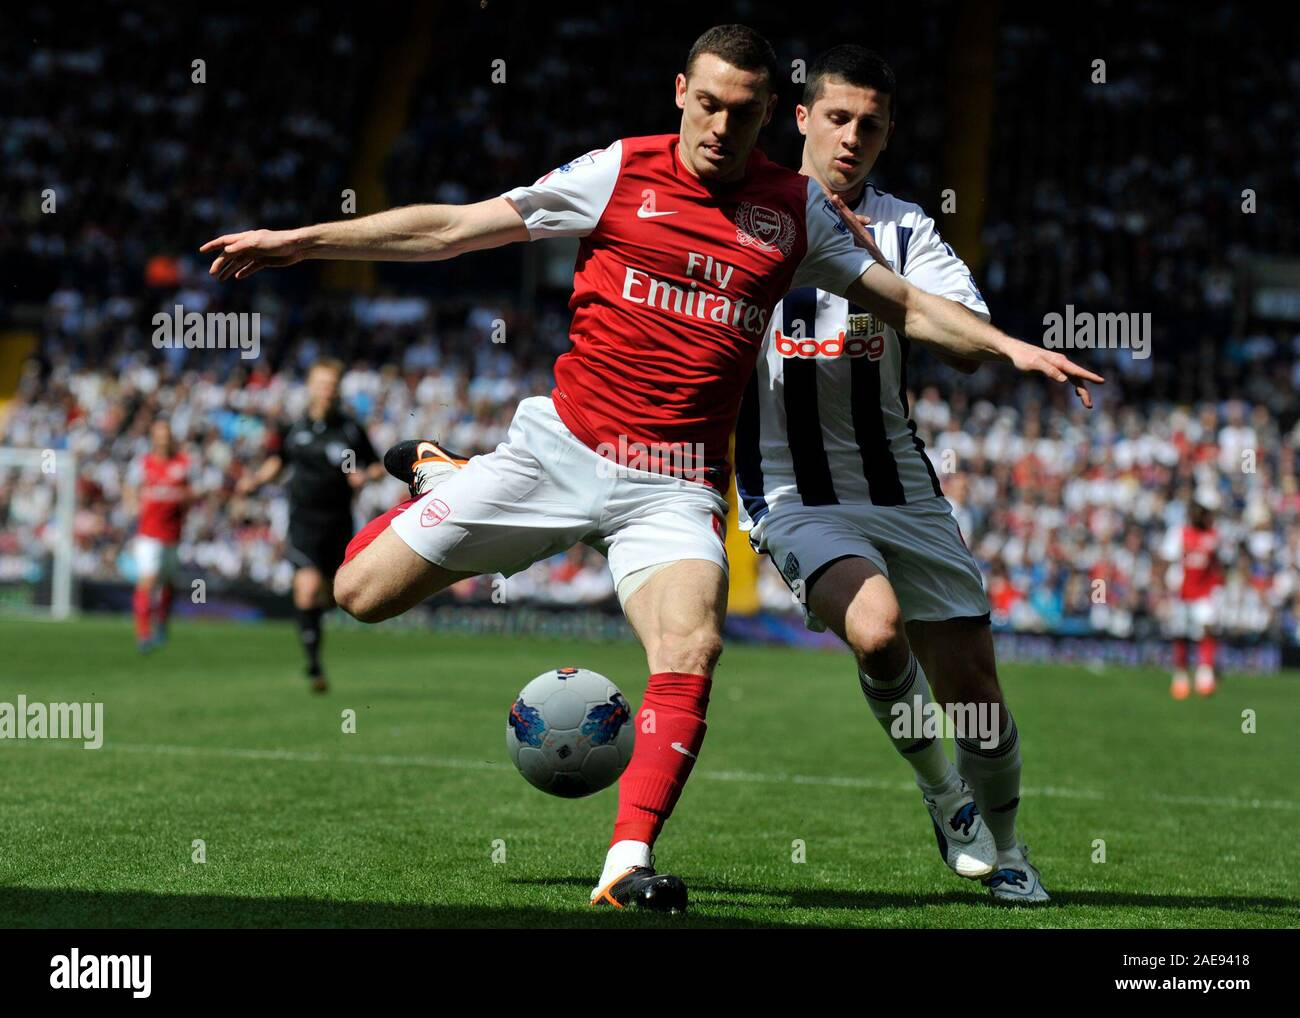 13th May 2012 Soccer Premiership Football West Bromwich Albion Vs Arsenal Thomas Vermaelen Clears In Front Of Shane Long Of West Bromwich Albion Photographer Paul Roberts Oneuptop Alamy Stock Photo Alamy